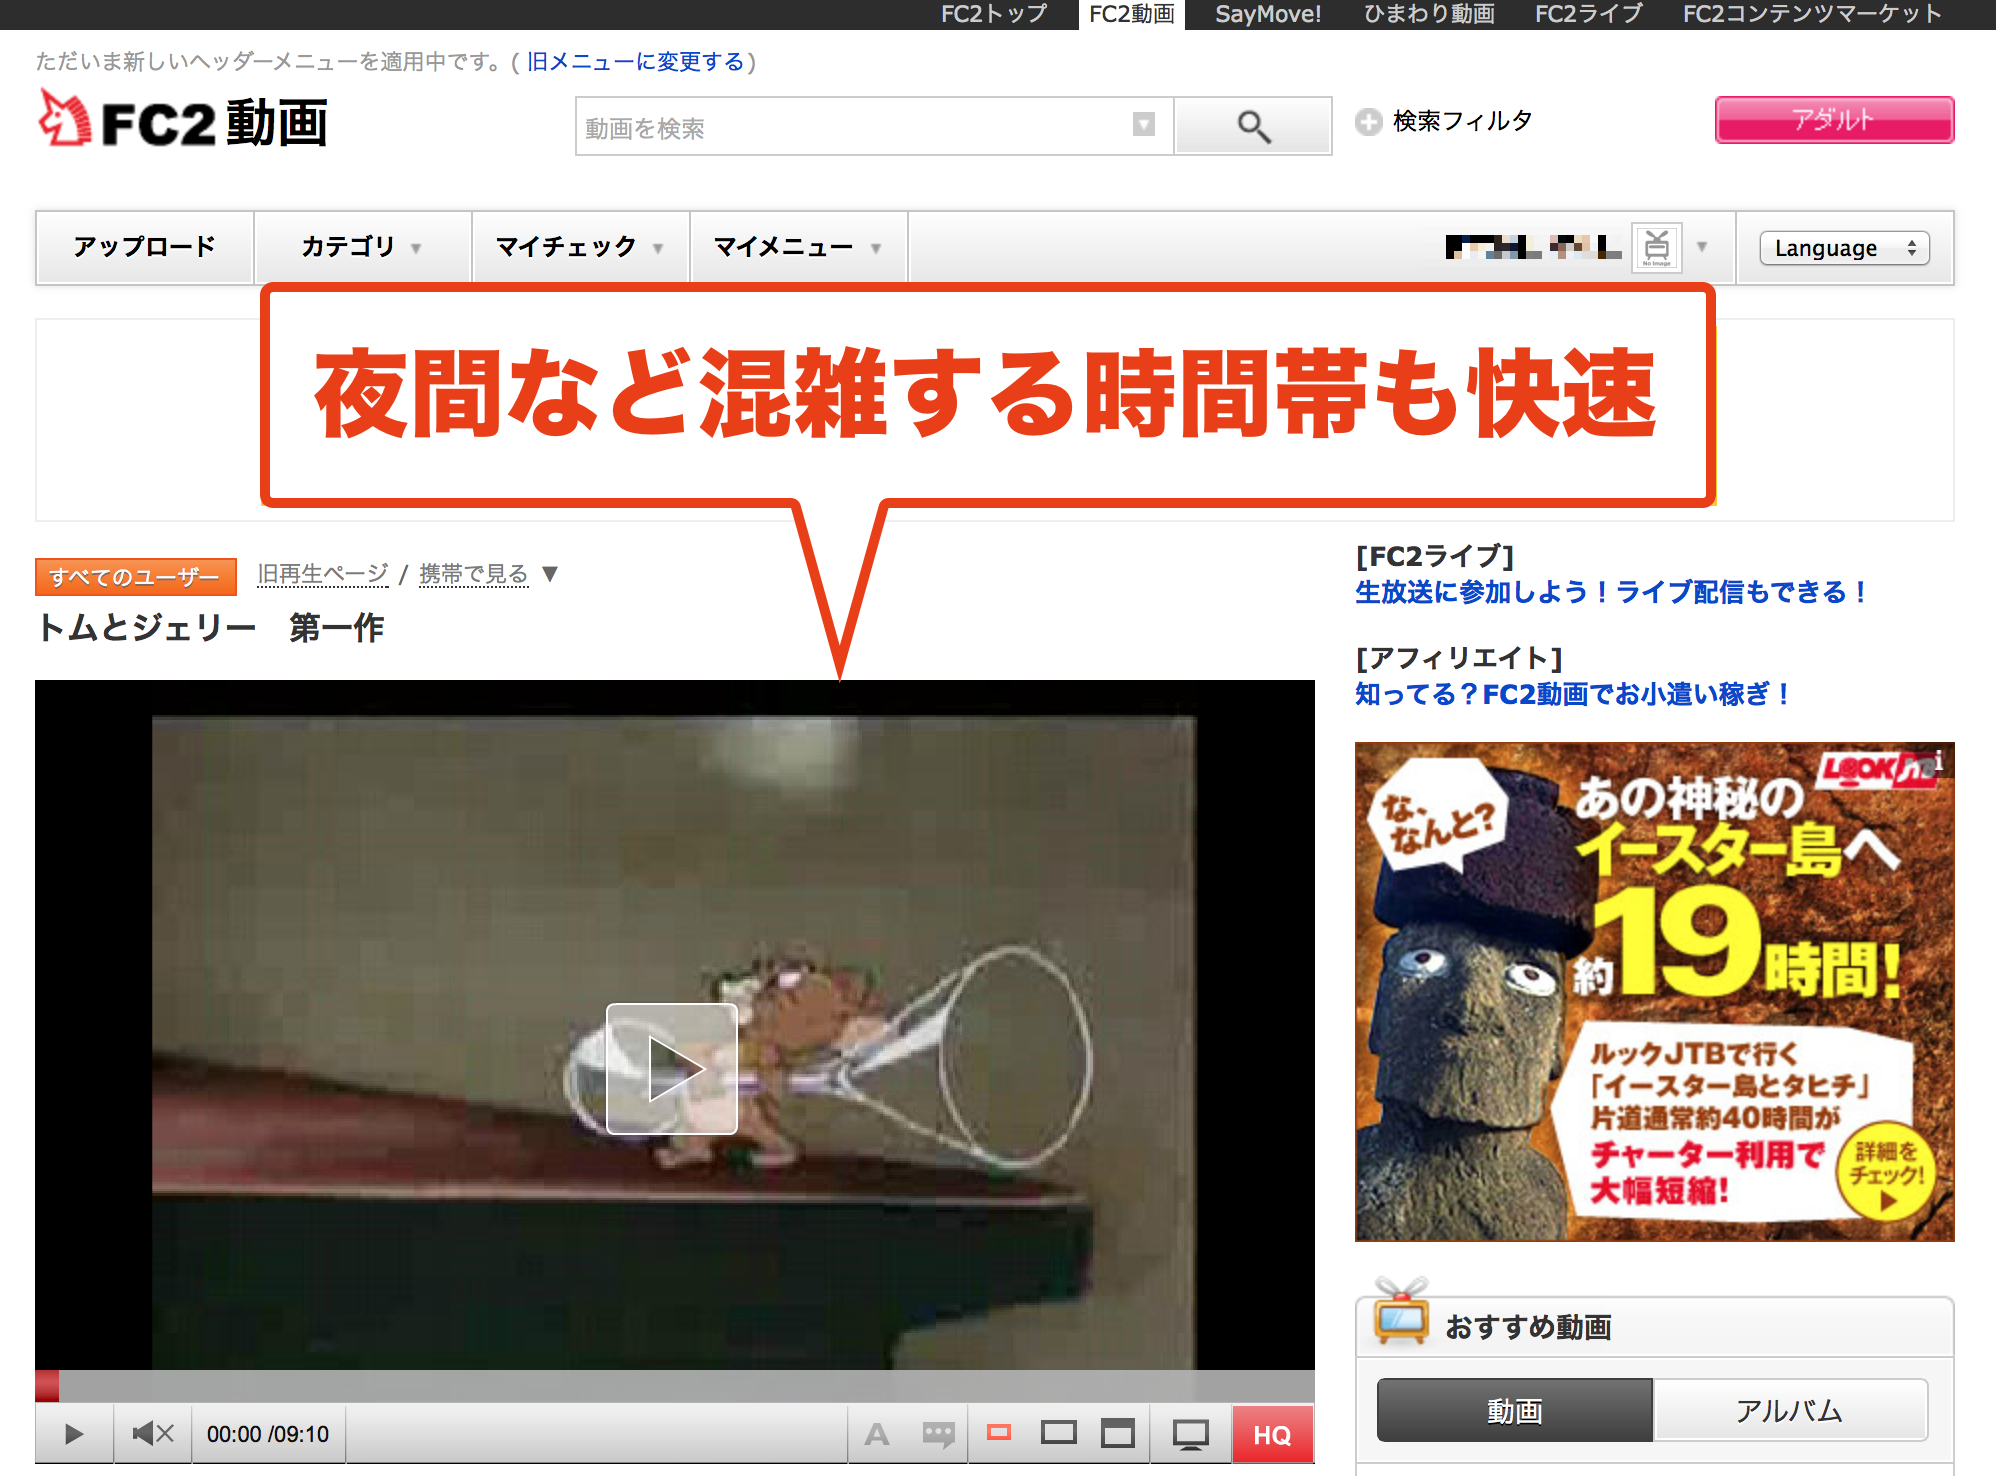 FC2動画の有料会員のメリットとデメリット3